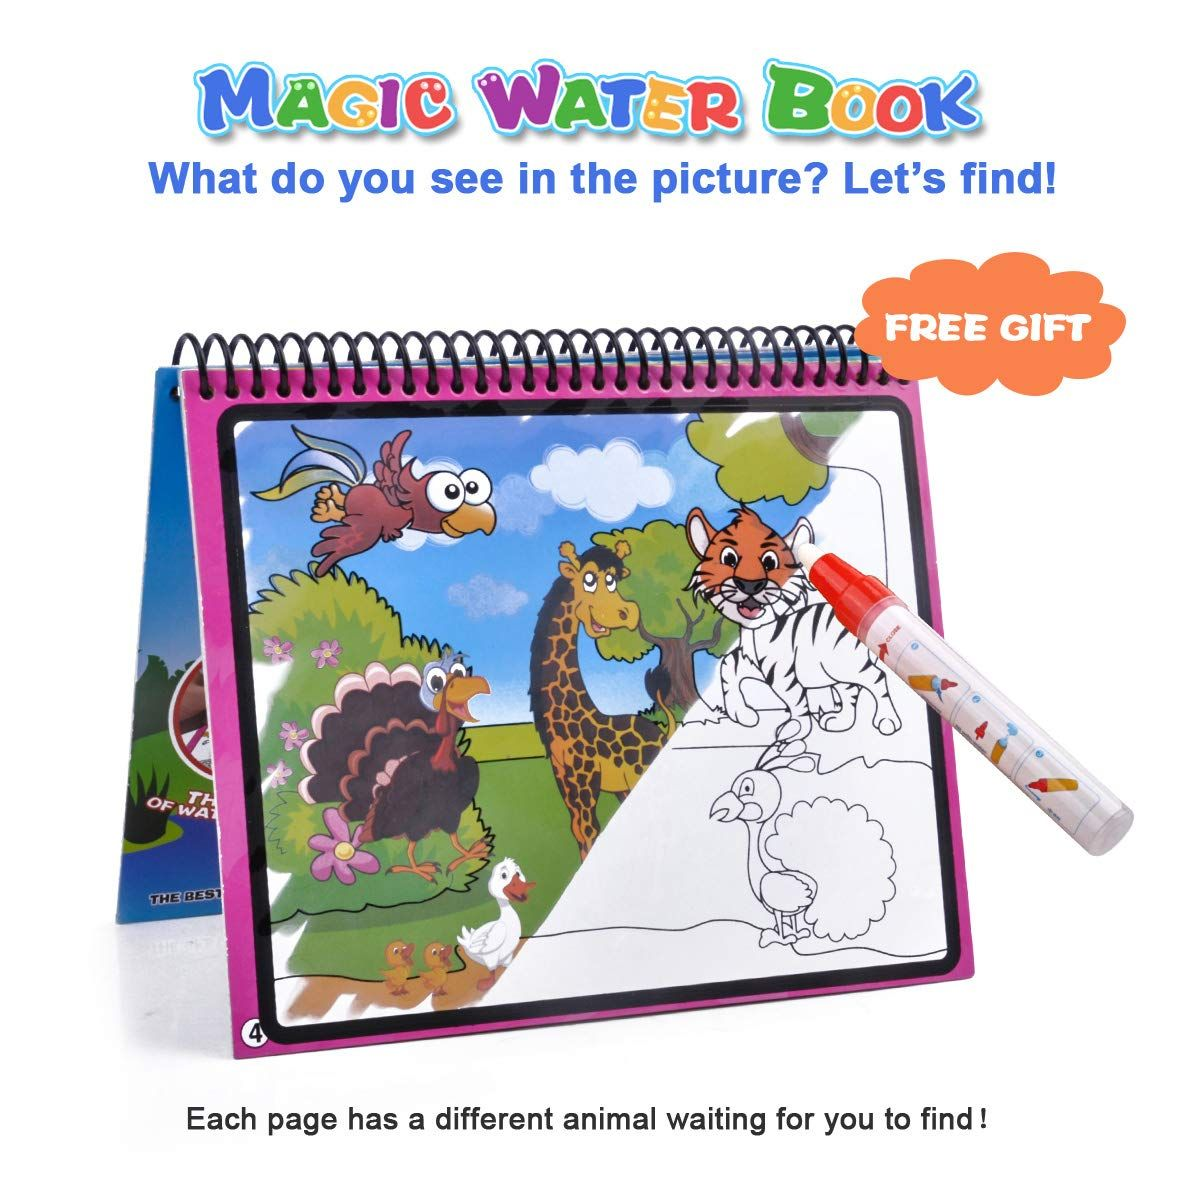 Meland Large Water Doodle Mat Aqua Doodle Mat 39 37 X 27 5 Inch With 4 Water Pens And 8 Molds And A Wate Kids Coloring Books Toddler Gifts Christmas Gifts Toys